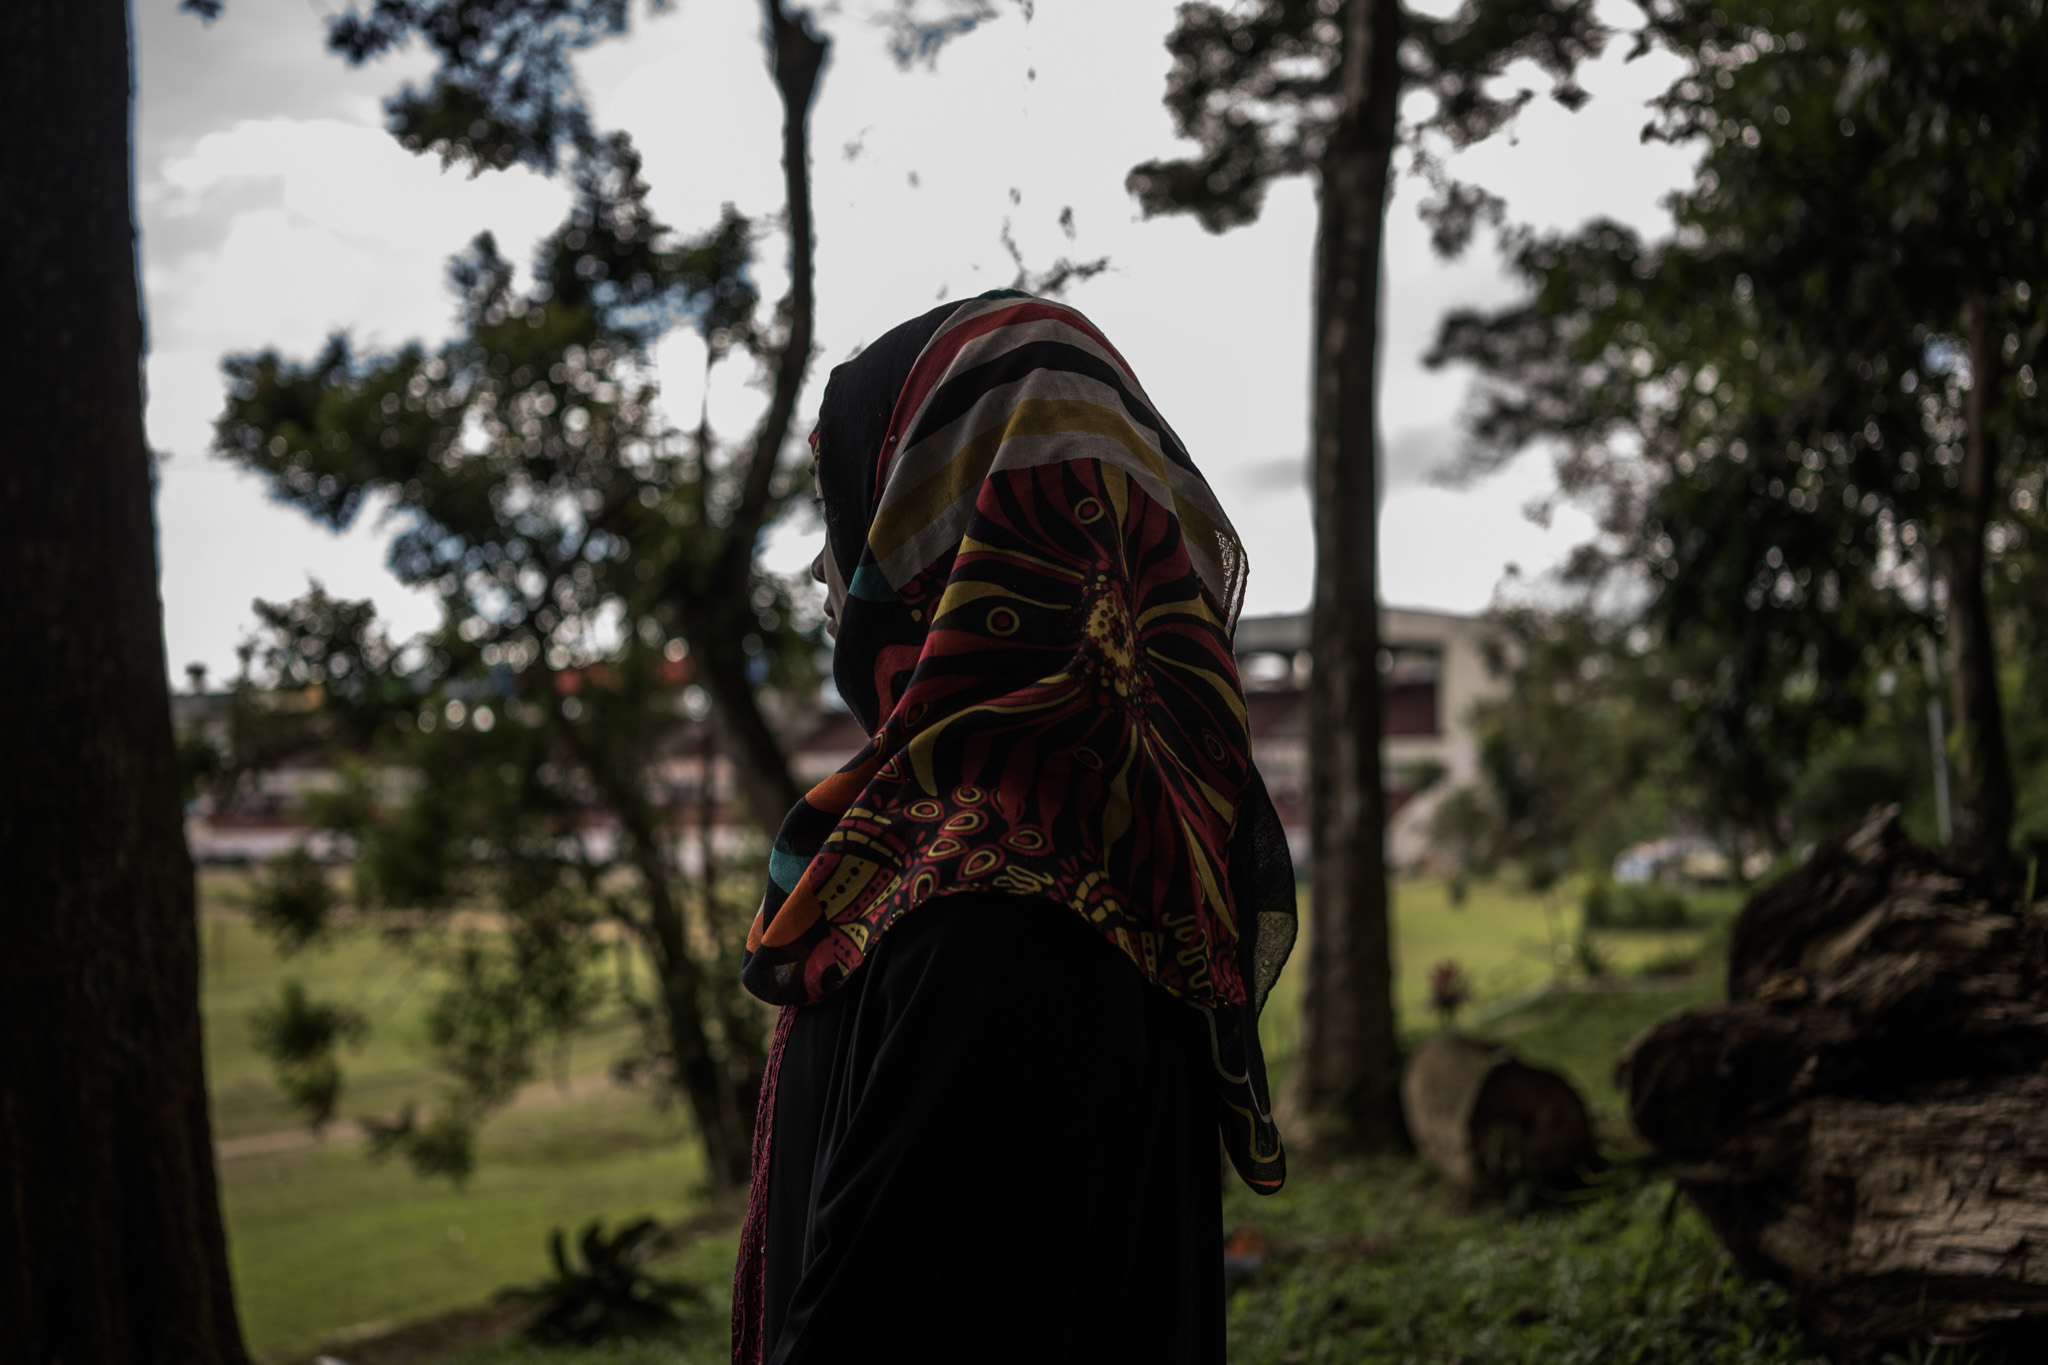 IDEAL DEATH. 'For me, dying as a mujahideen is the ideal deathu0080u009d,' says Sakeena, who thought of joining Maute-ISIS training, but was discouraged by her mother. Photo by Martin San Diego/Rappler